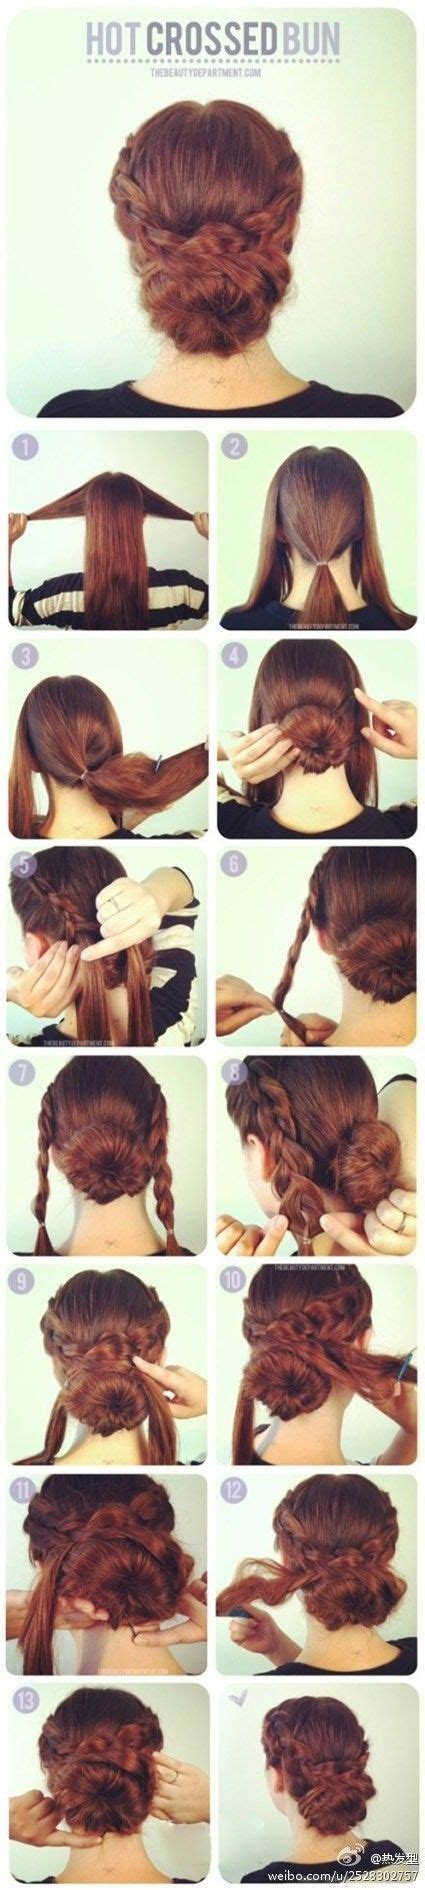 hairstyles with hot buns 78 best dance hairstyles images on pinterest